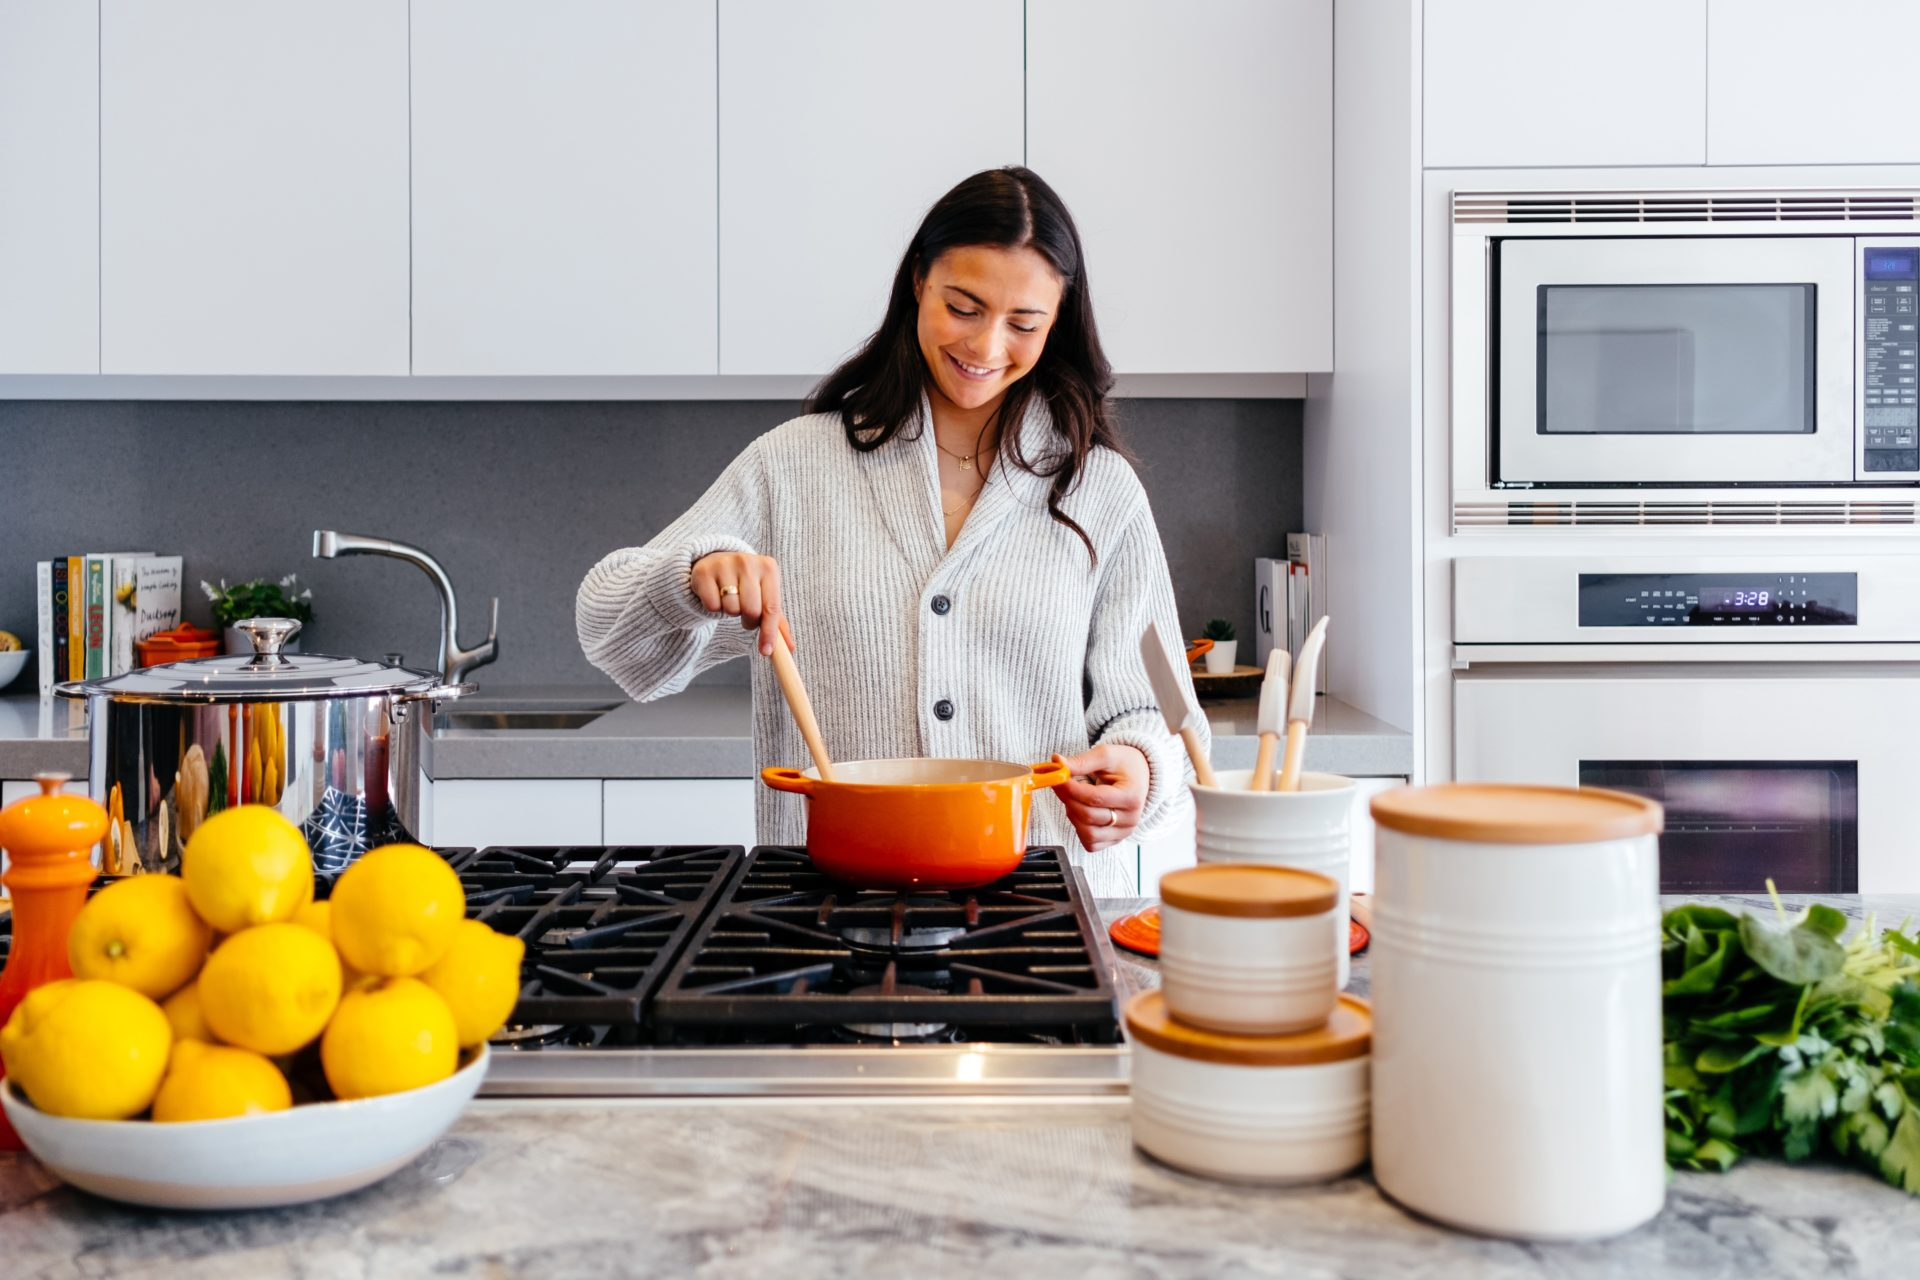 Be More Eco-Friendly in the Kitchen